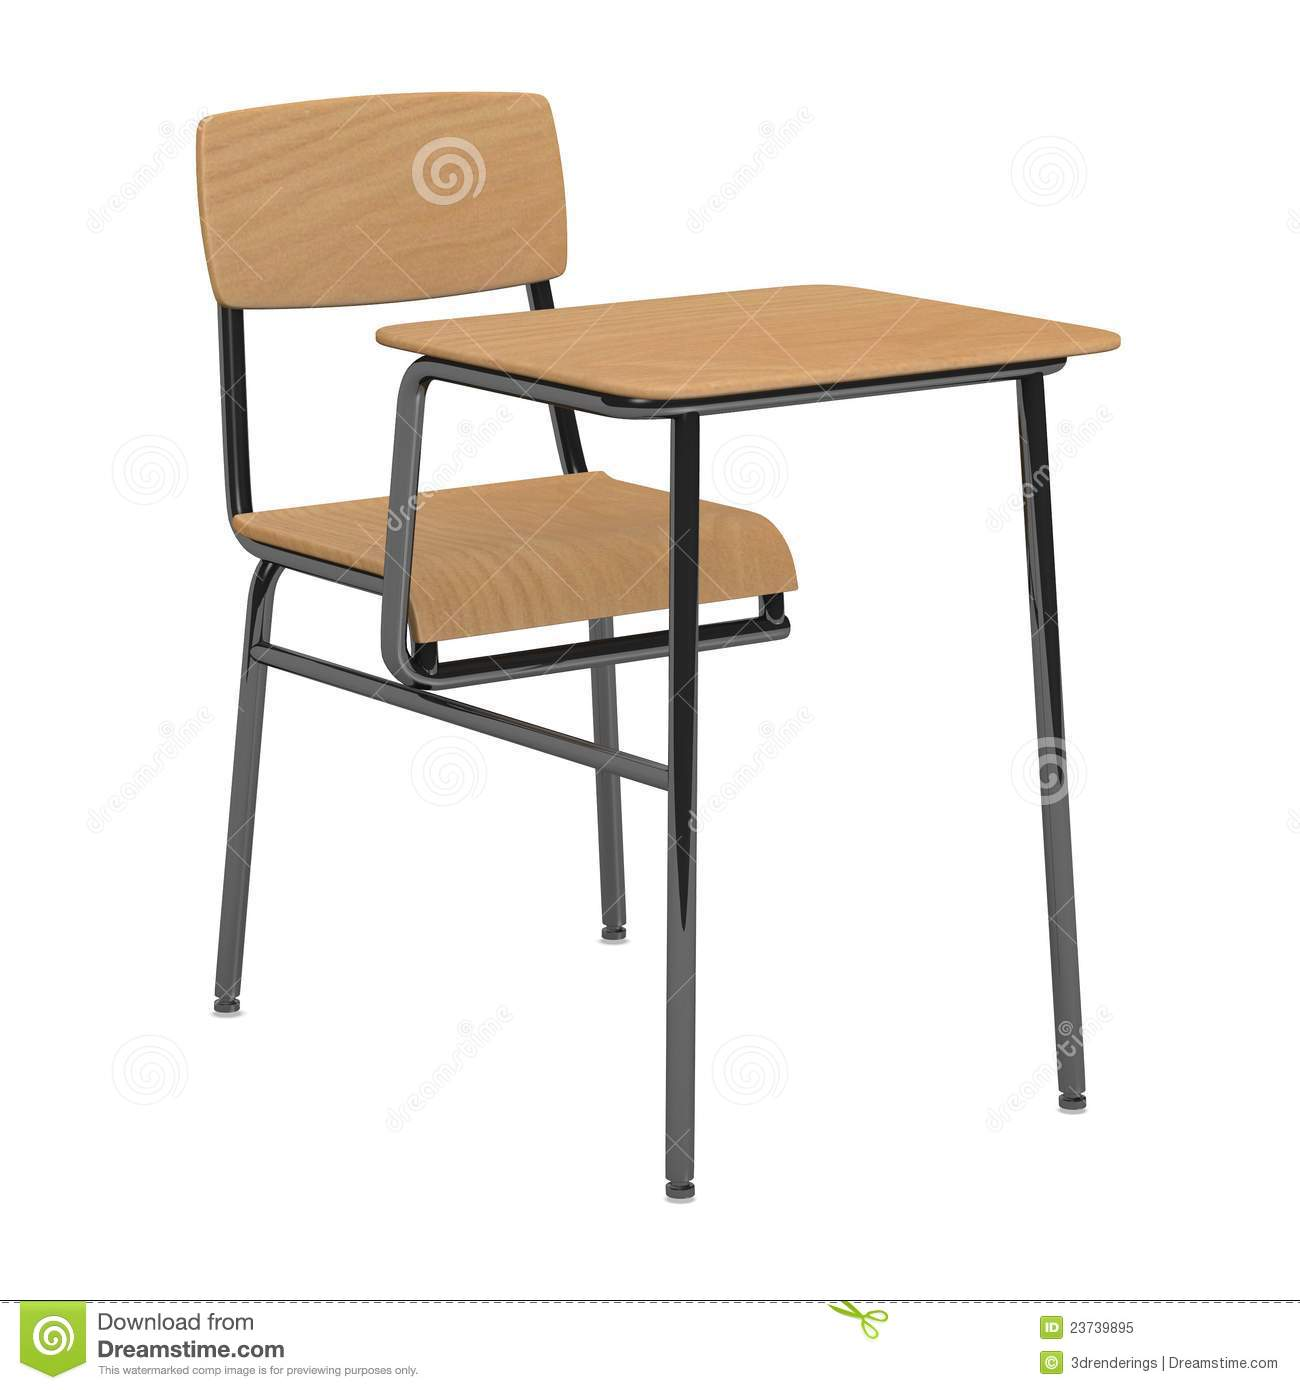 School Table And Chairs School Chair And Table For A Single Person Royalty Free